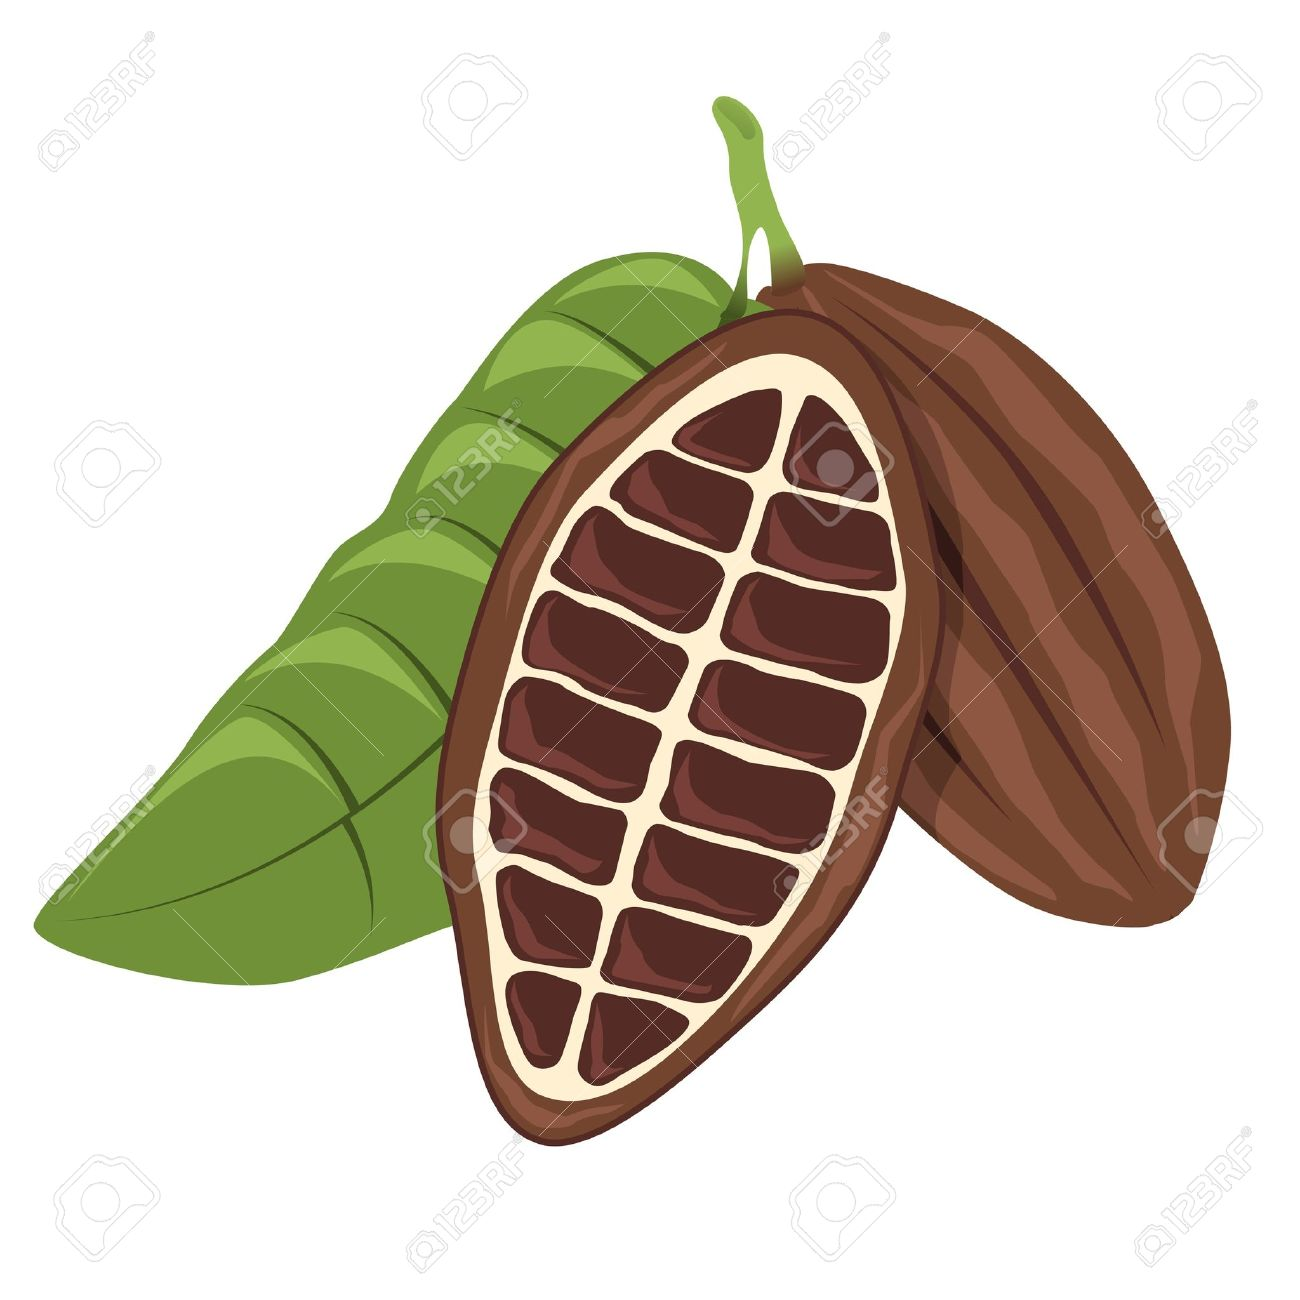 Cacao Bean Royalty Free Cliparts, Vectors, And Stock Illustration.